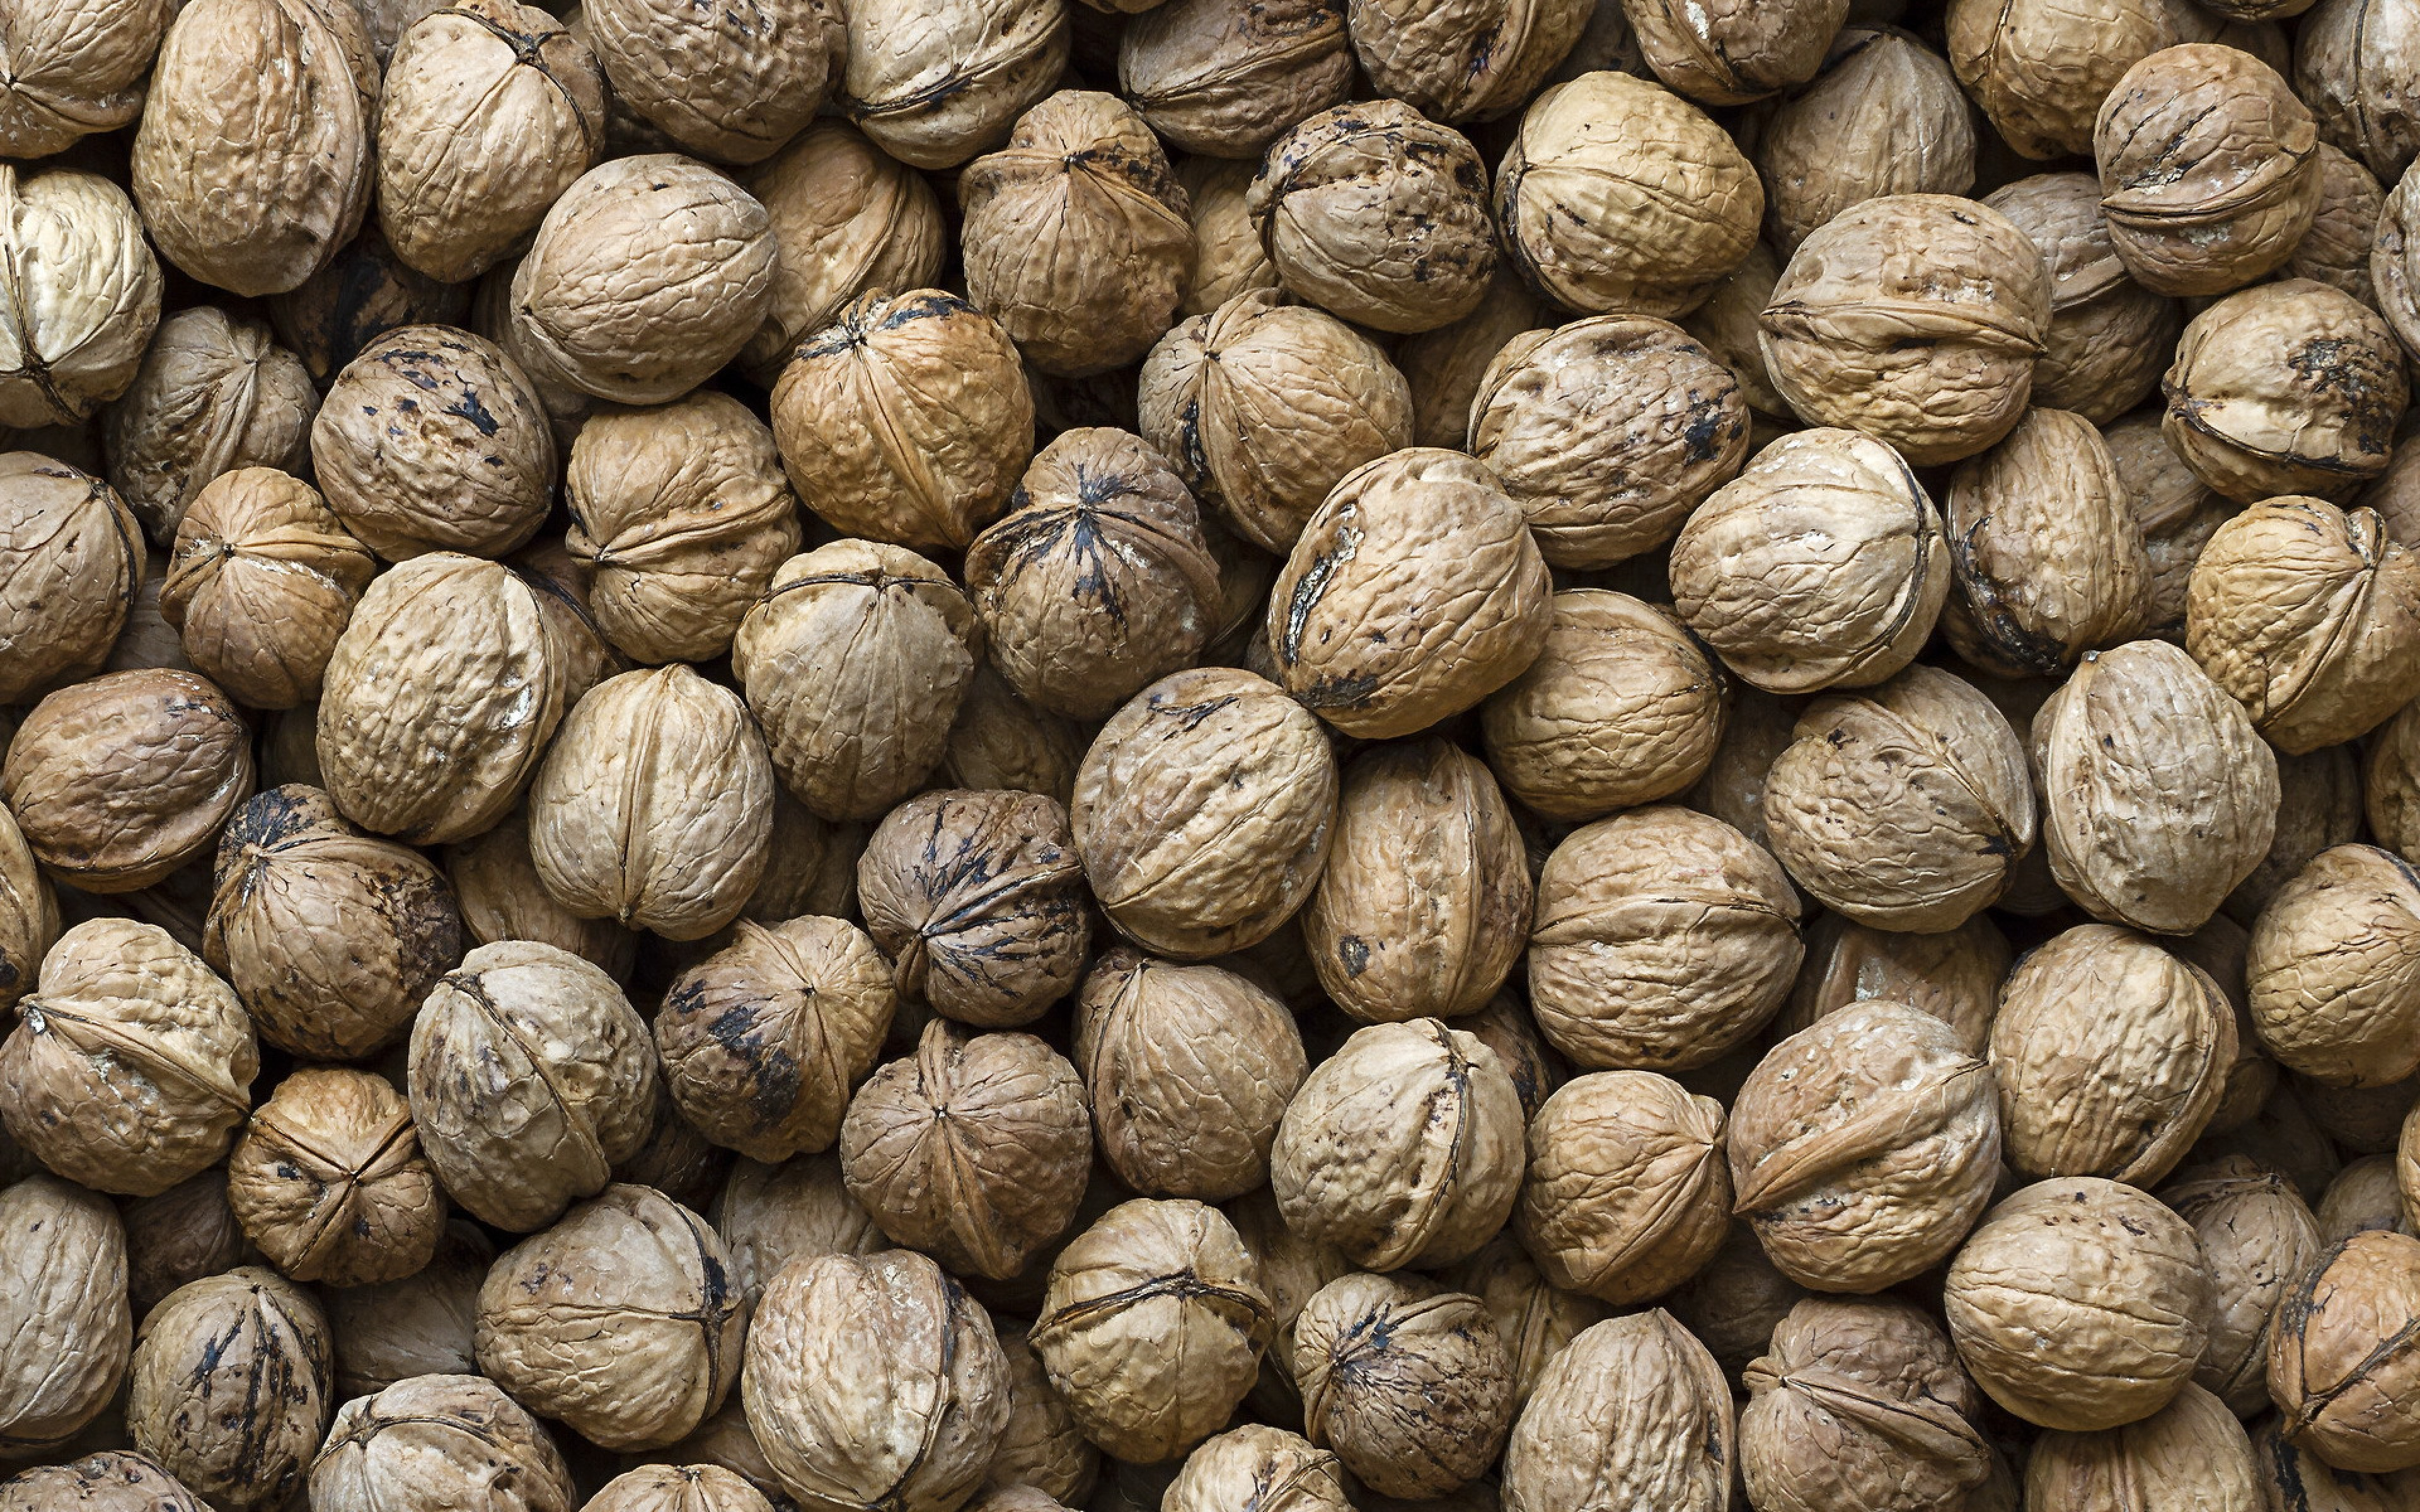 HD Background Walnuts Shelled Nuts Texture Dried Fruit Wallpaper ...